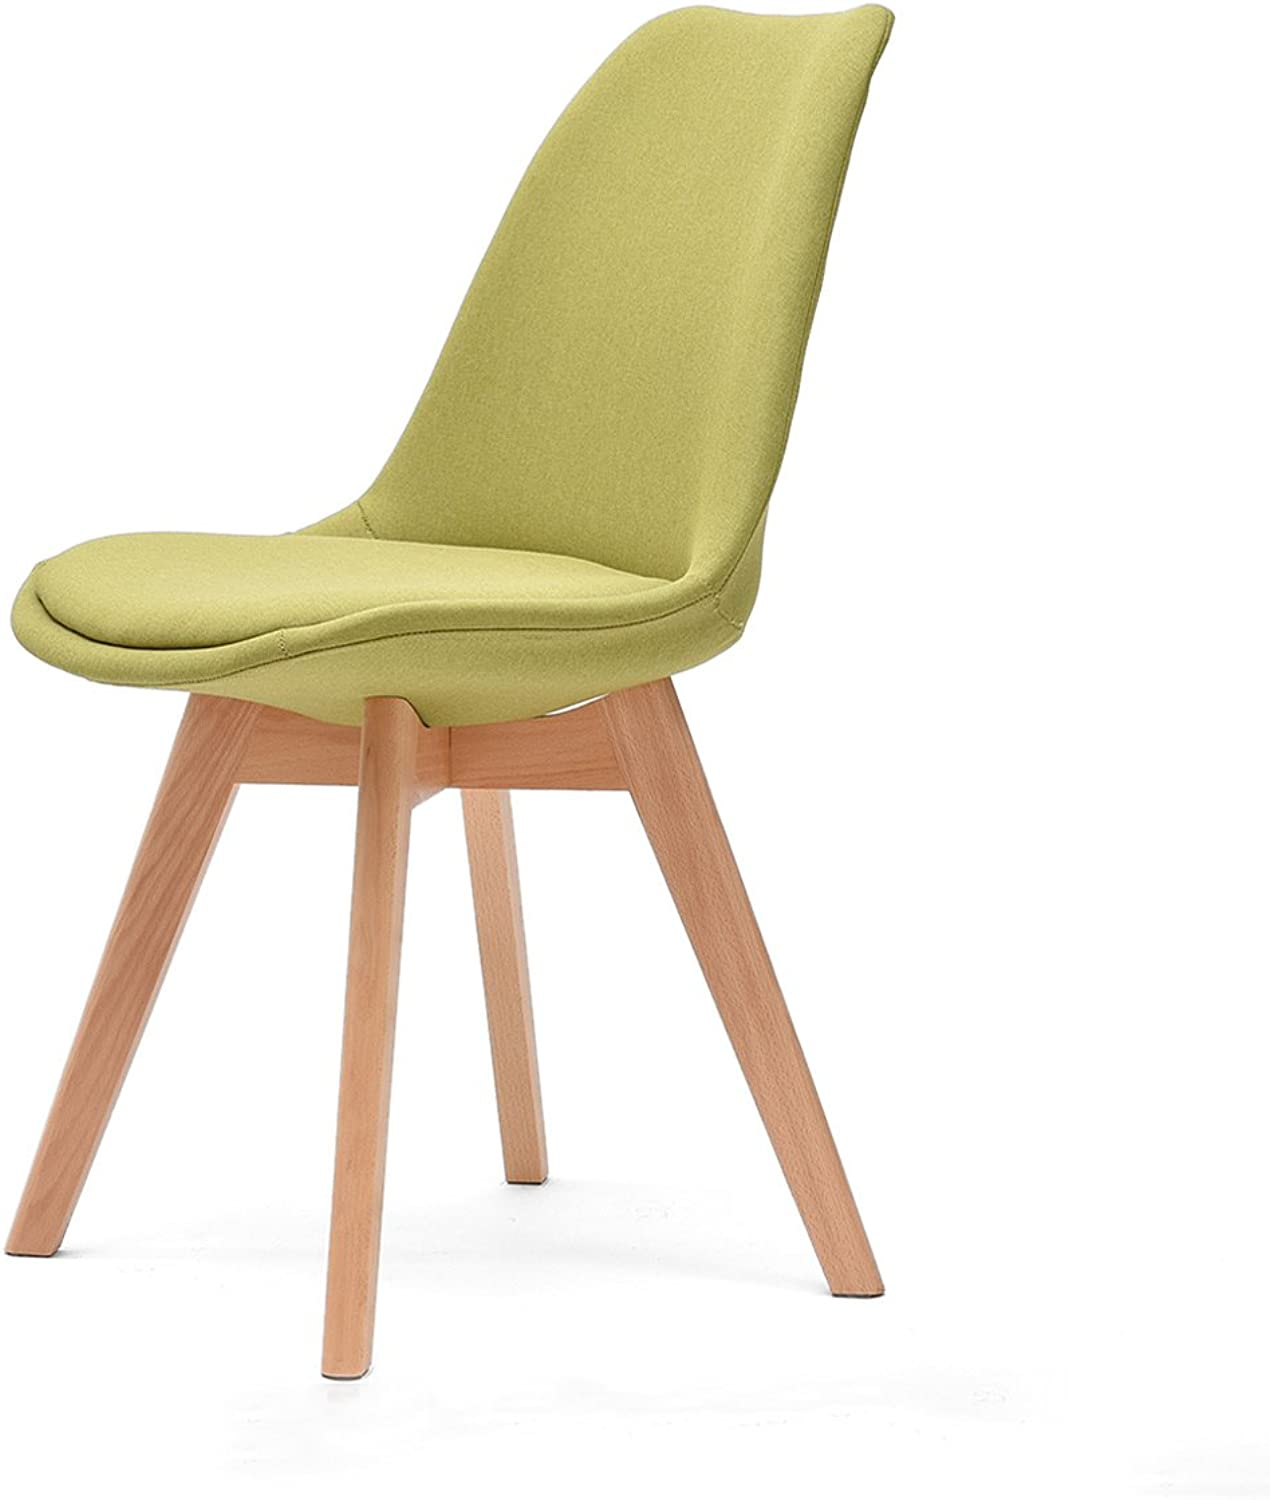 CKH Solid Wood Desk Chair Simple Modern Backrest Dining Chair Creative Nordic Office Chair (color   Matcha)